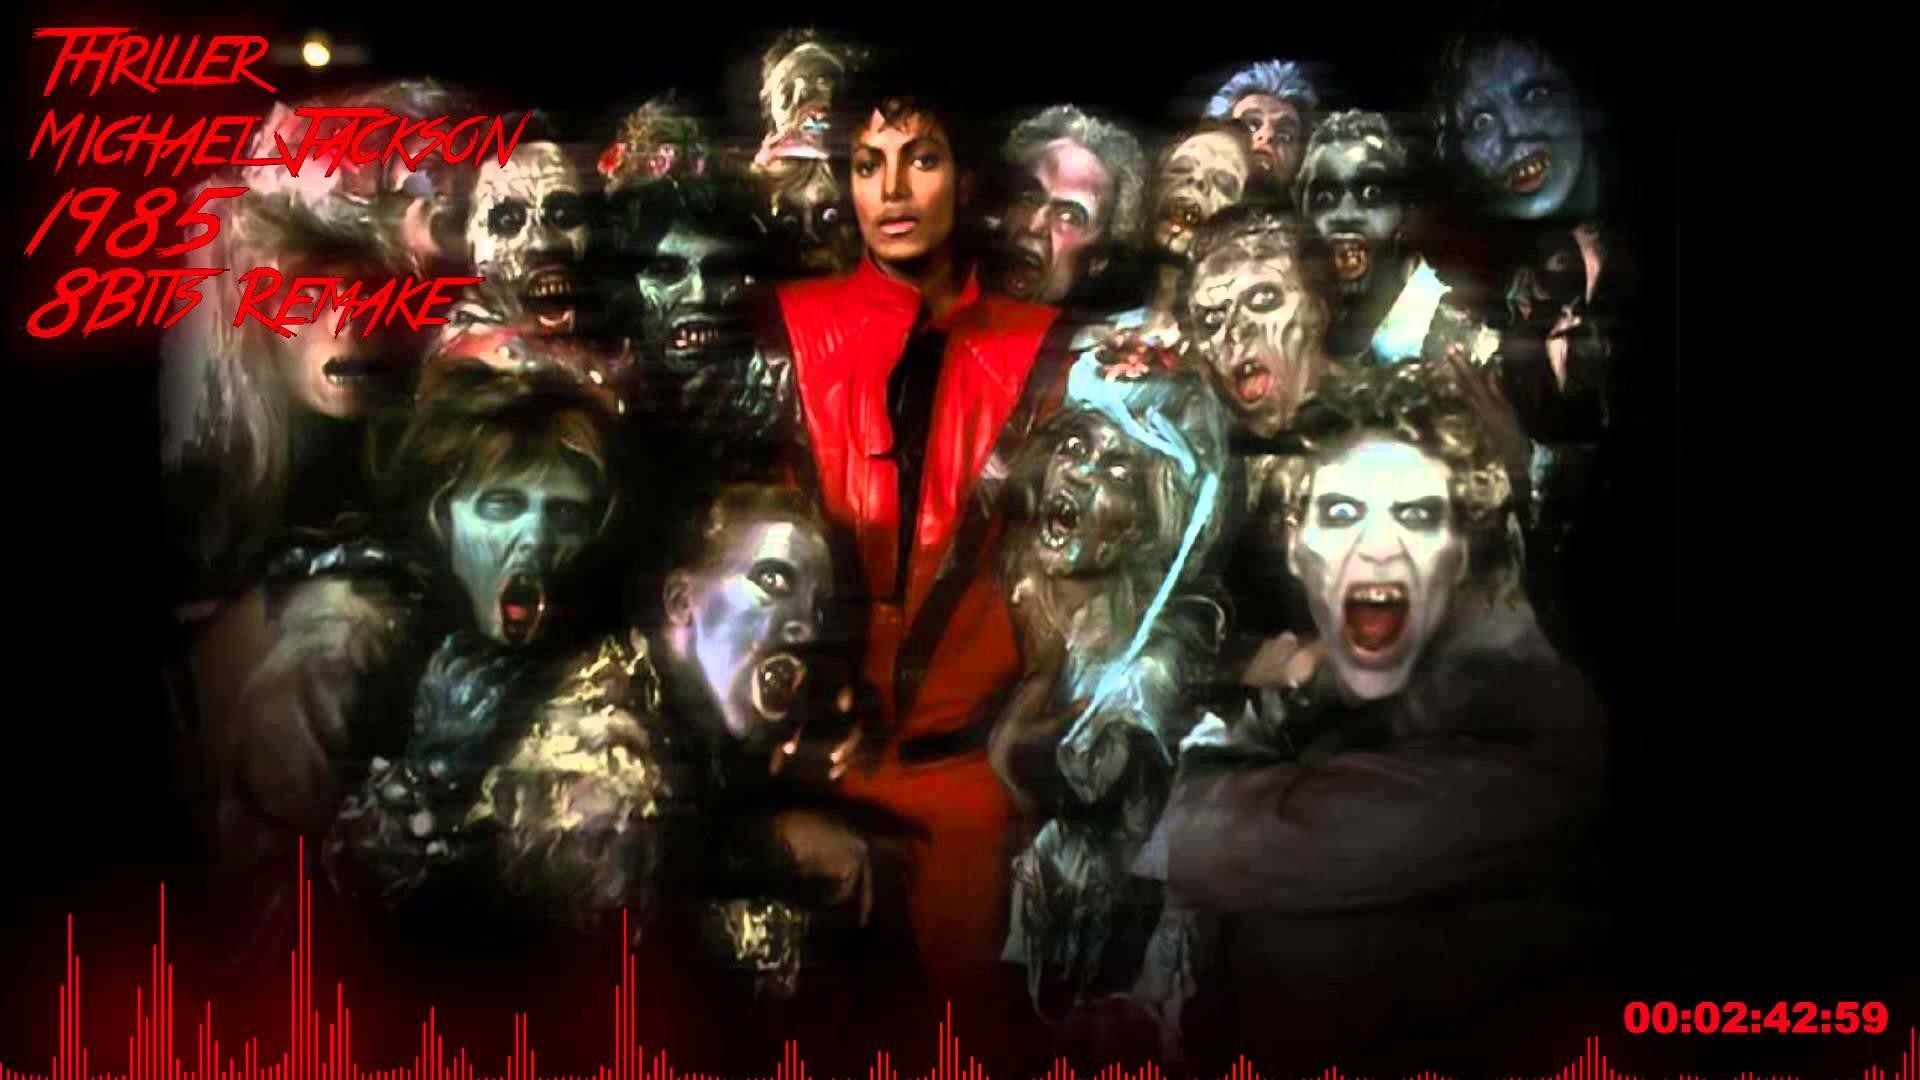 1920x1080 Michael jackson thriller wallpaper 63 images